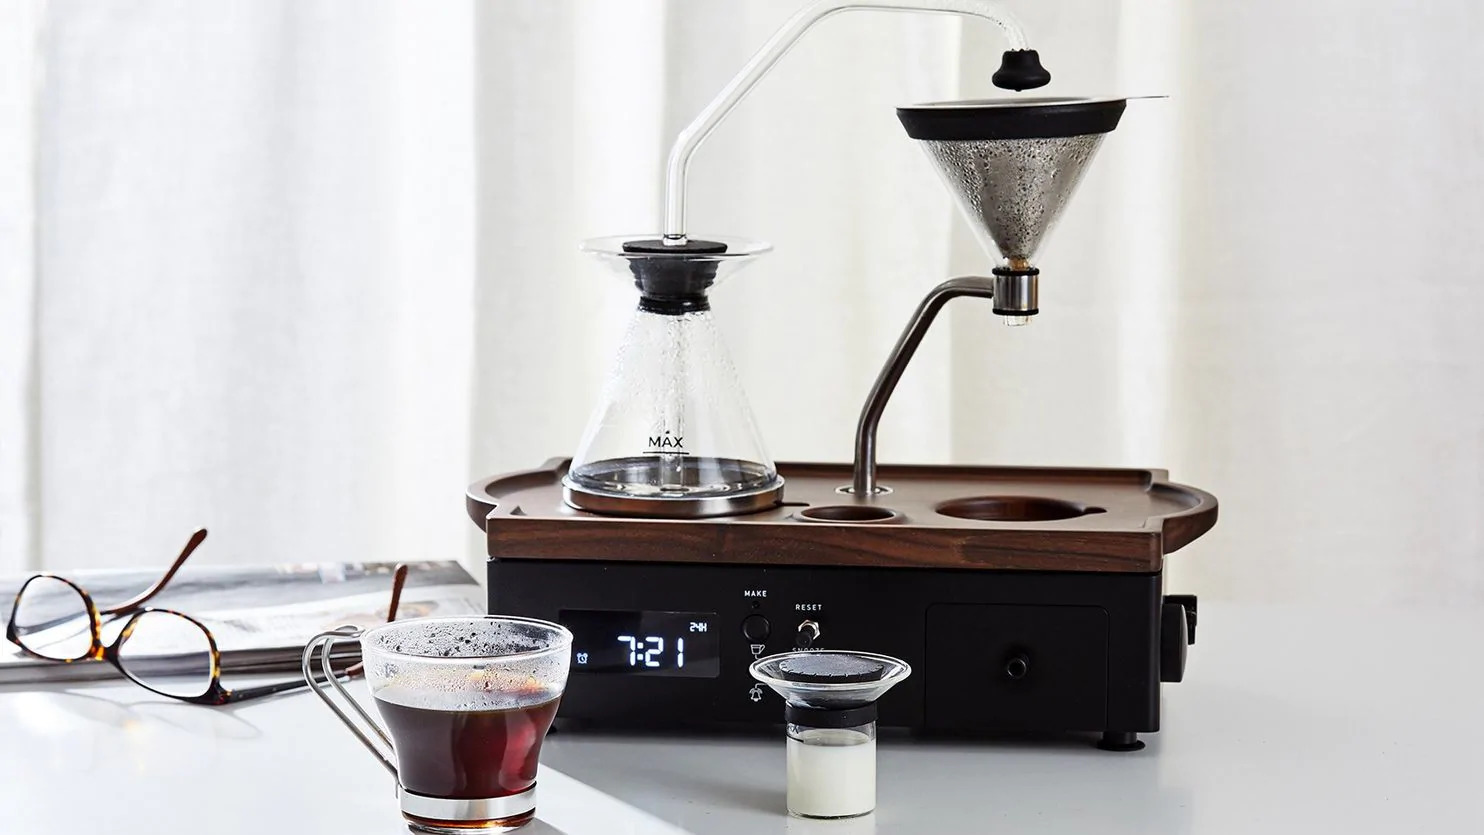 This Coffee Brewer Alarm Clock Is the Stuff (Very Caffeinated) Dreams Are Made Of